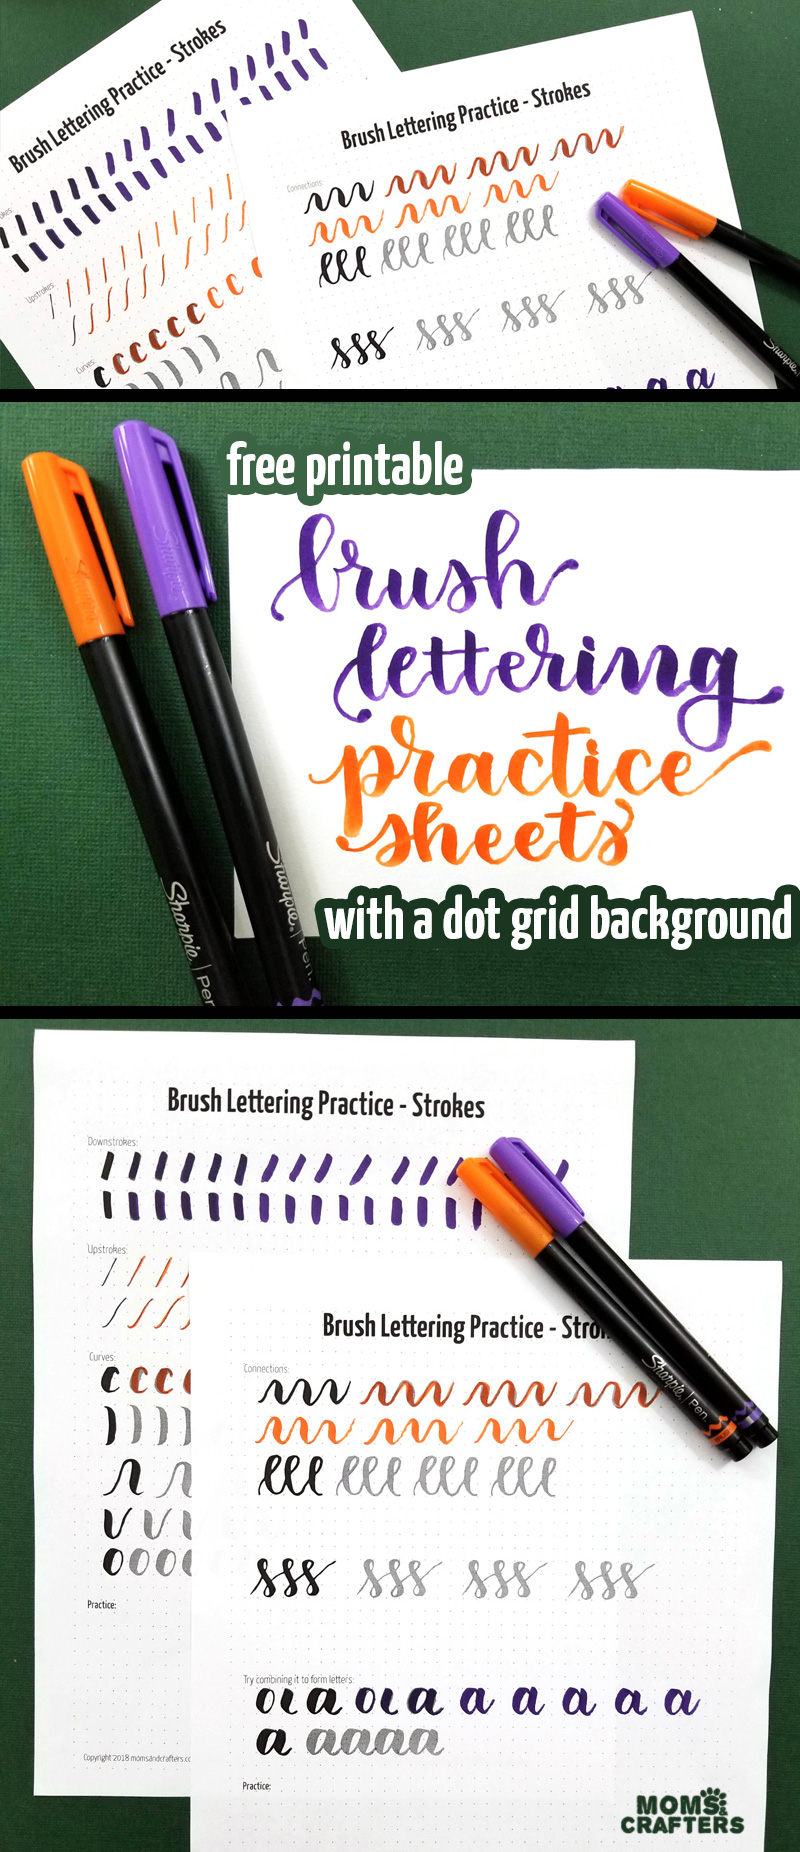 Click to download these free printable brush lettering practice sheets to learn how to do hand lettering with the basic strokes you need! #brushlettering #calligraphy #handlettering